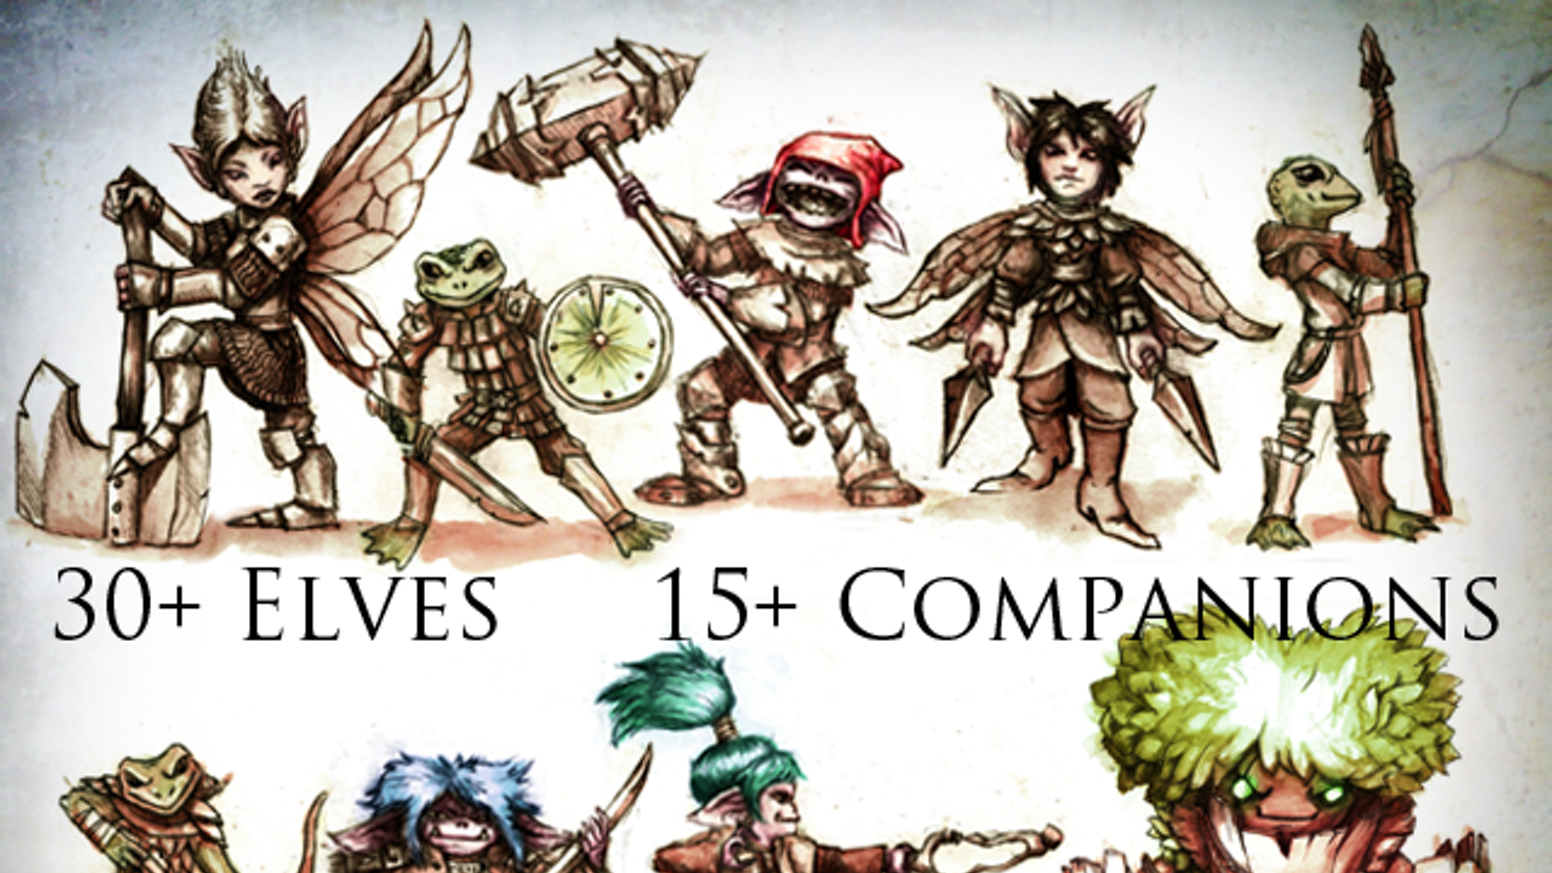 The Elven Adventurers Project will produce a set of Elven hero miniatures for dungeon-crawling, RPGs and 28mm tabletop wargames